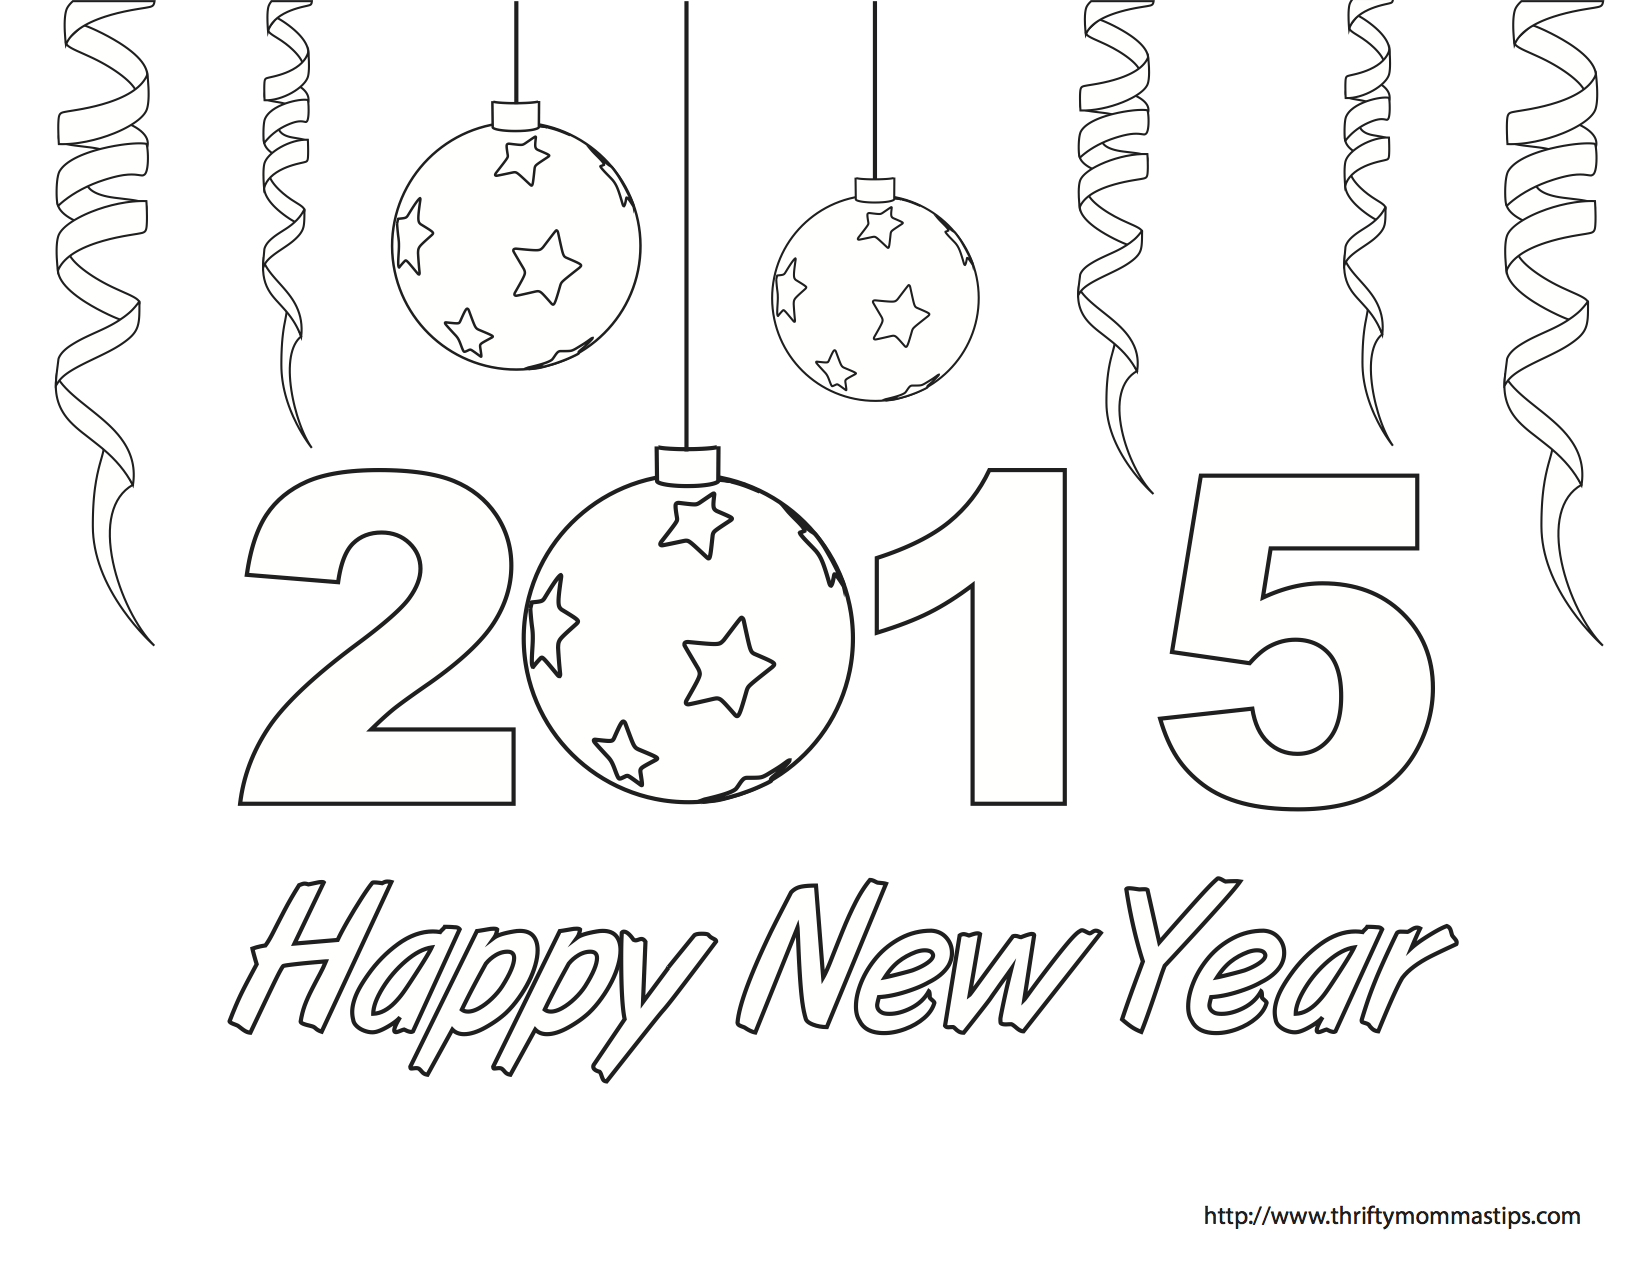 Happy New Year colouring page